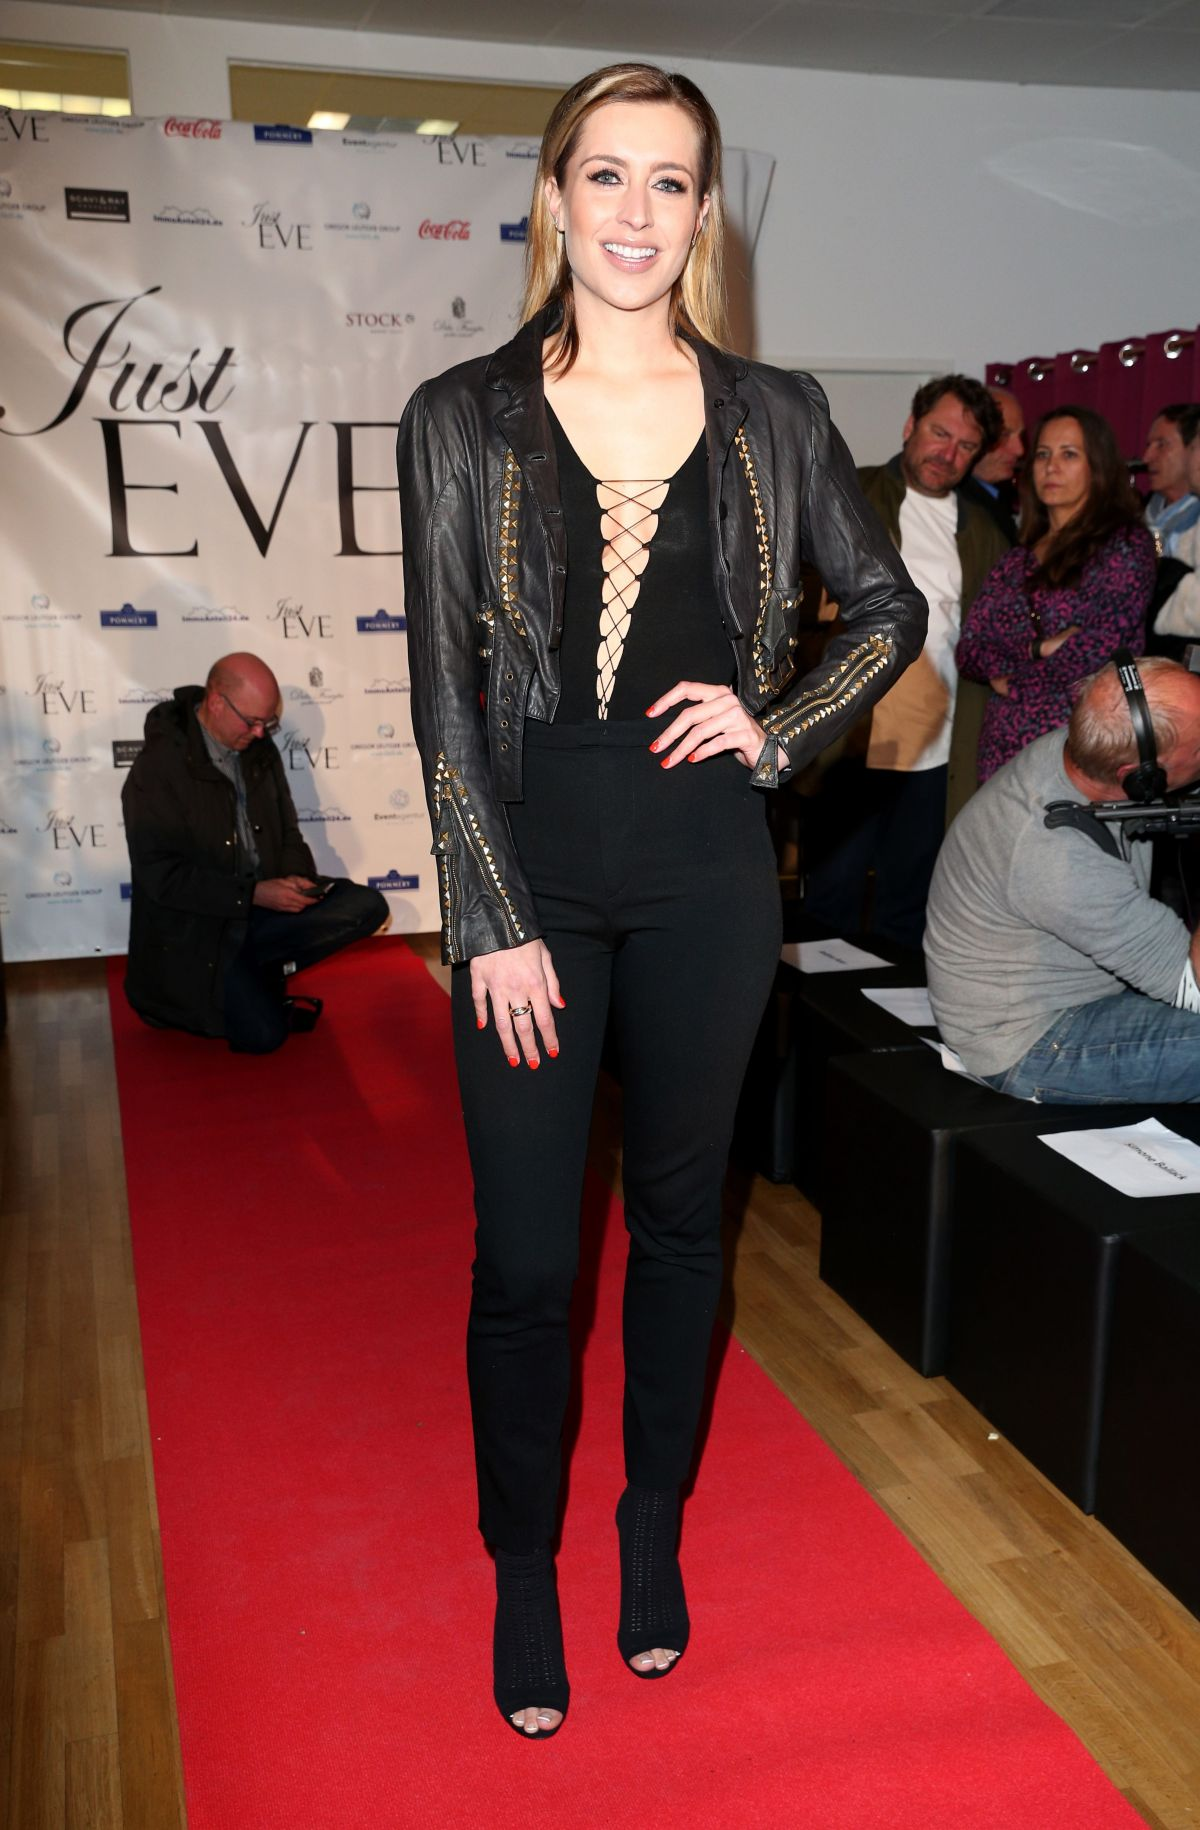 VERENA KERTH at Just Eve Spring Fashion Show in Munich 04/19/2017   verena-kerth-at-just-eve-spring-fashion-show-in-munich-04-19-2017_3